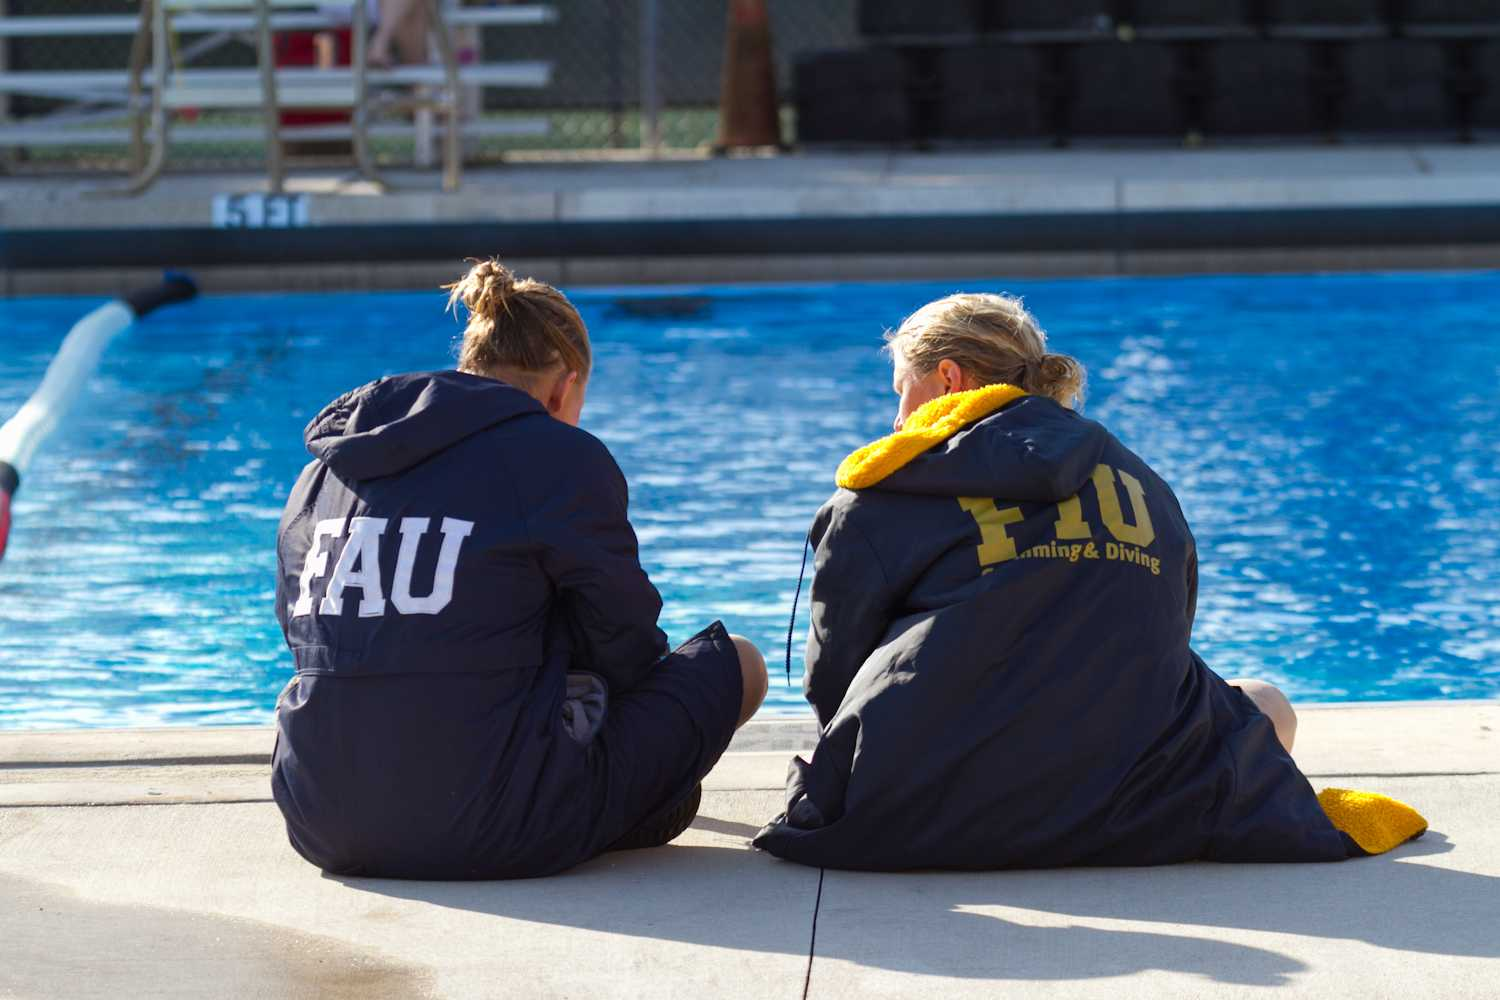 Two swimmers from FAU and FIU sit aside the pool during a break in the meet.